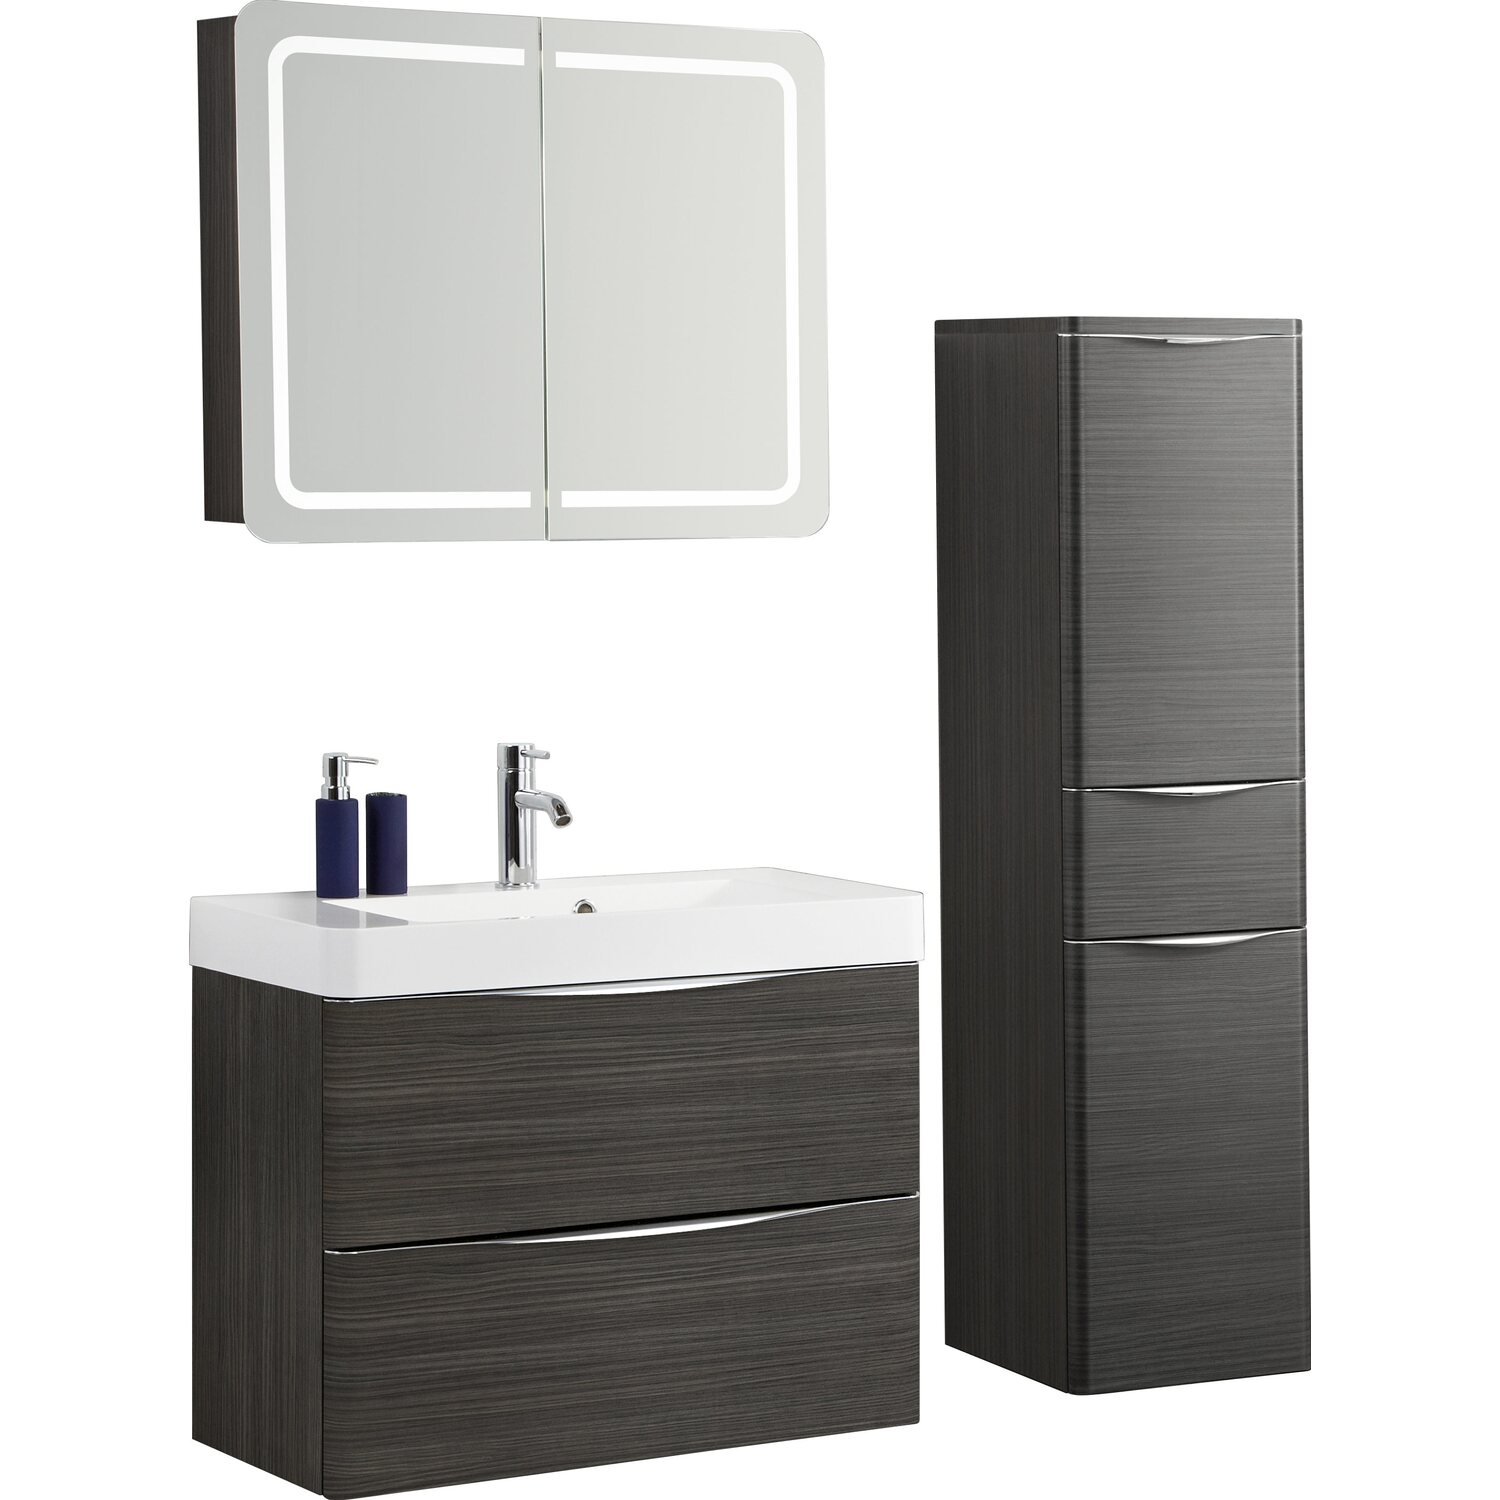 scanbad badm bel set 80 cm mit spiegelschrank samba hacienda braun 3 teilig kaufen bei obi. Black Bedroom Furniture Sets. Home Design Ideas